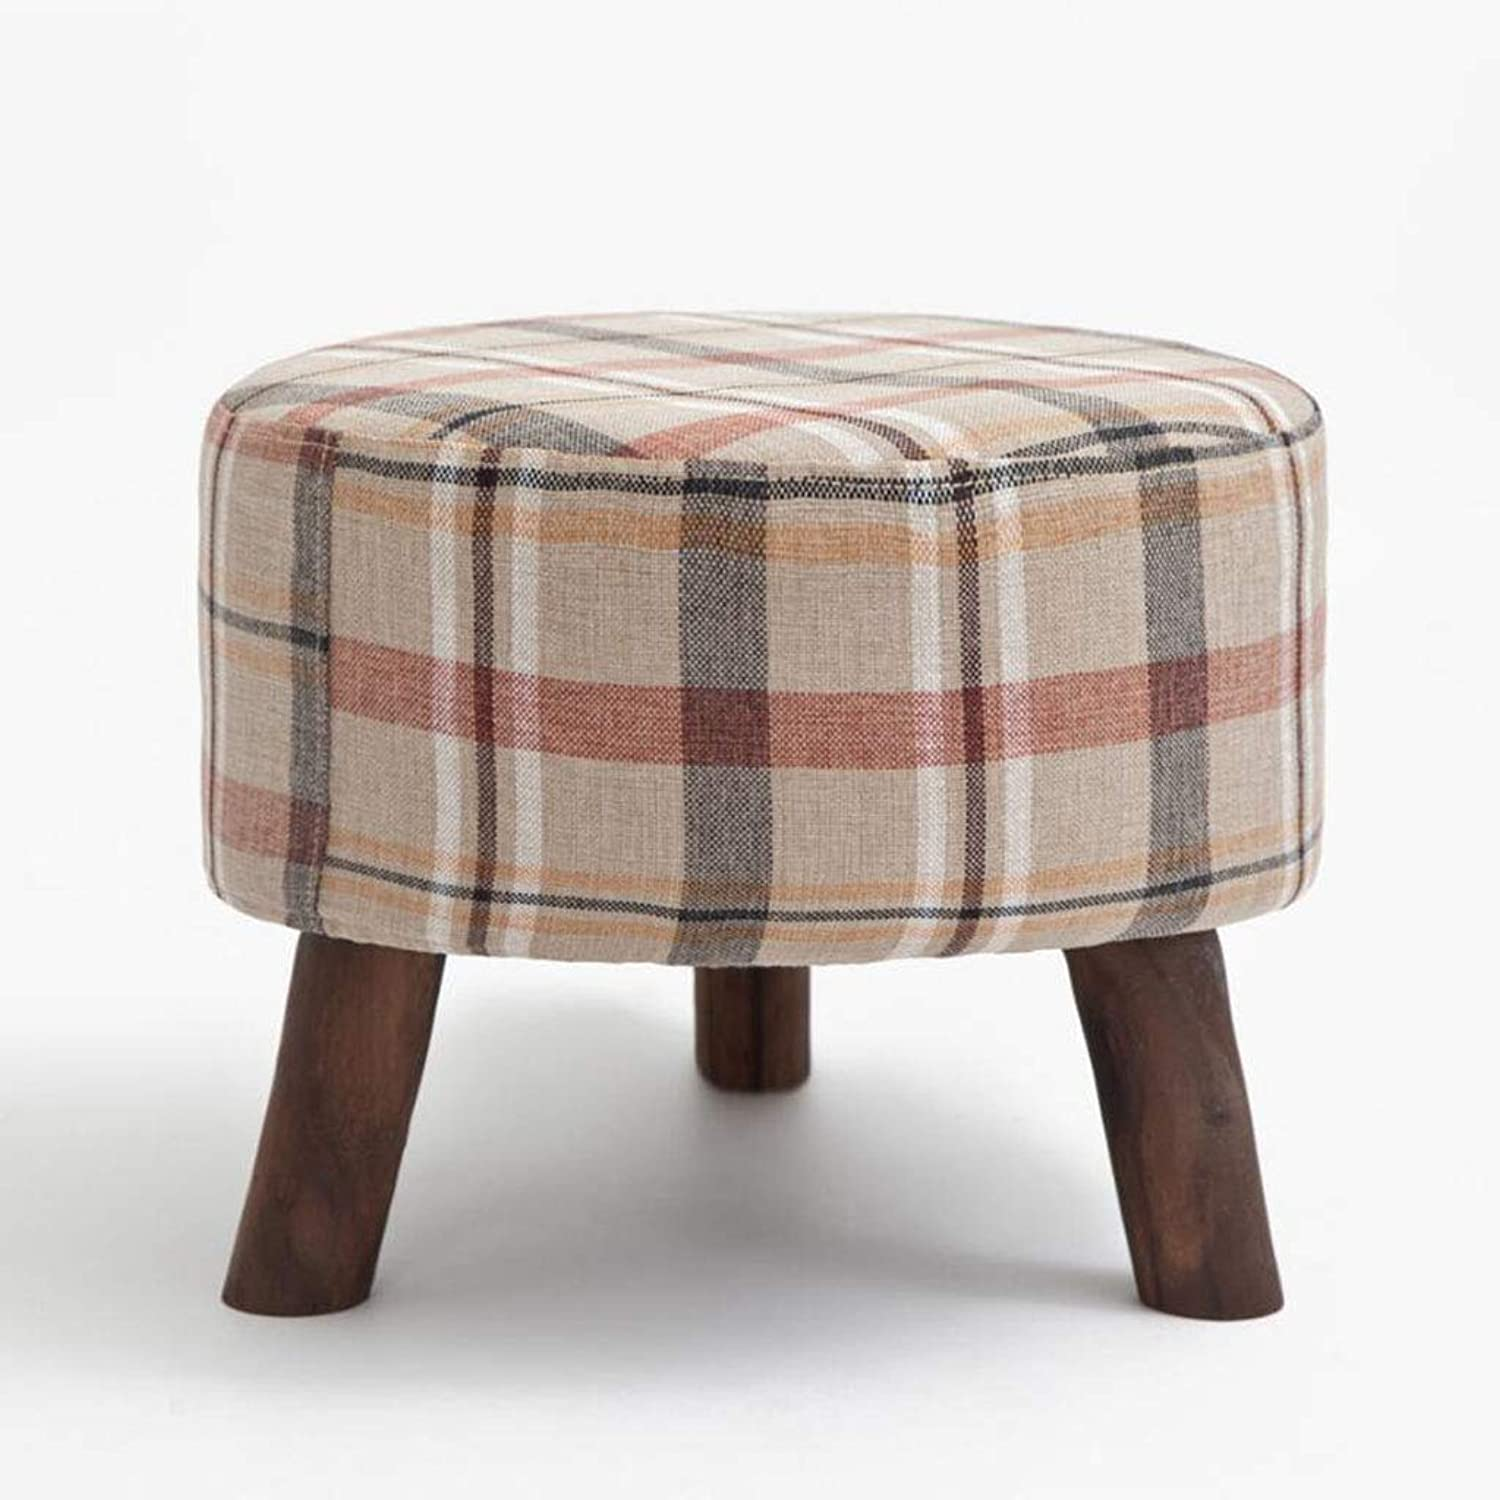 Fabric Sofa Bench 50  35  19 cm Solid Wood shoes Bench Modern stools Creative Footstool shoes Shop shoes Bench shoes Bench (color   A5)